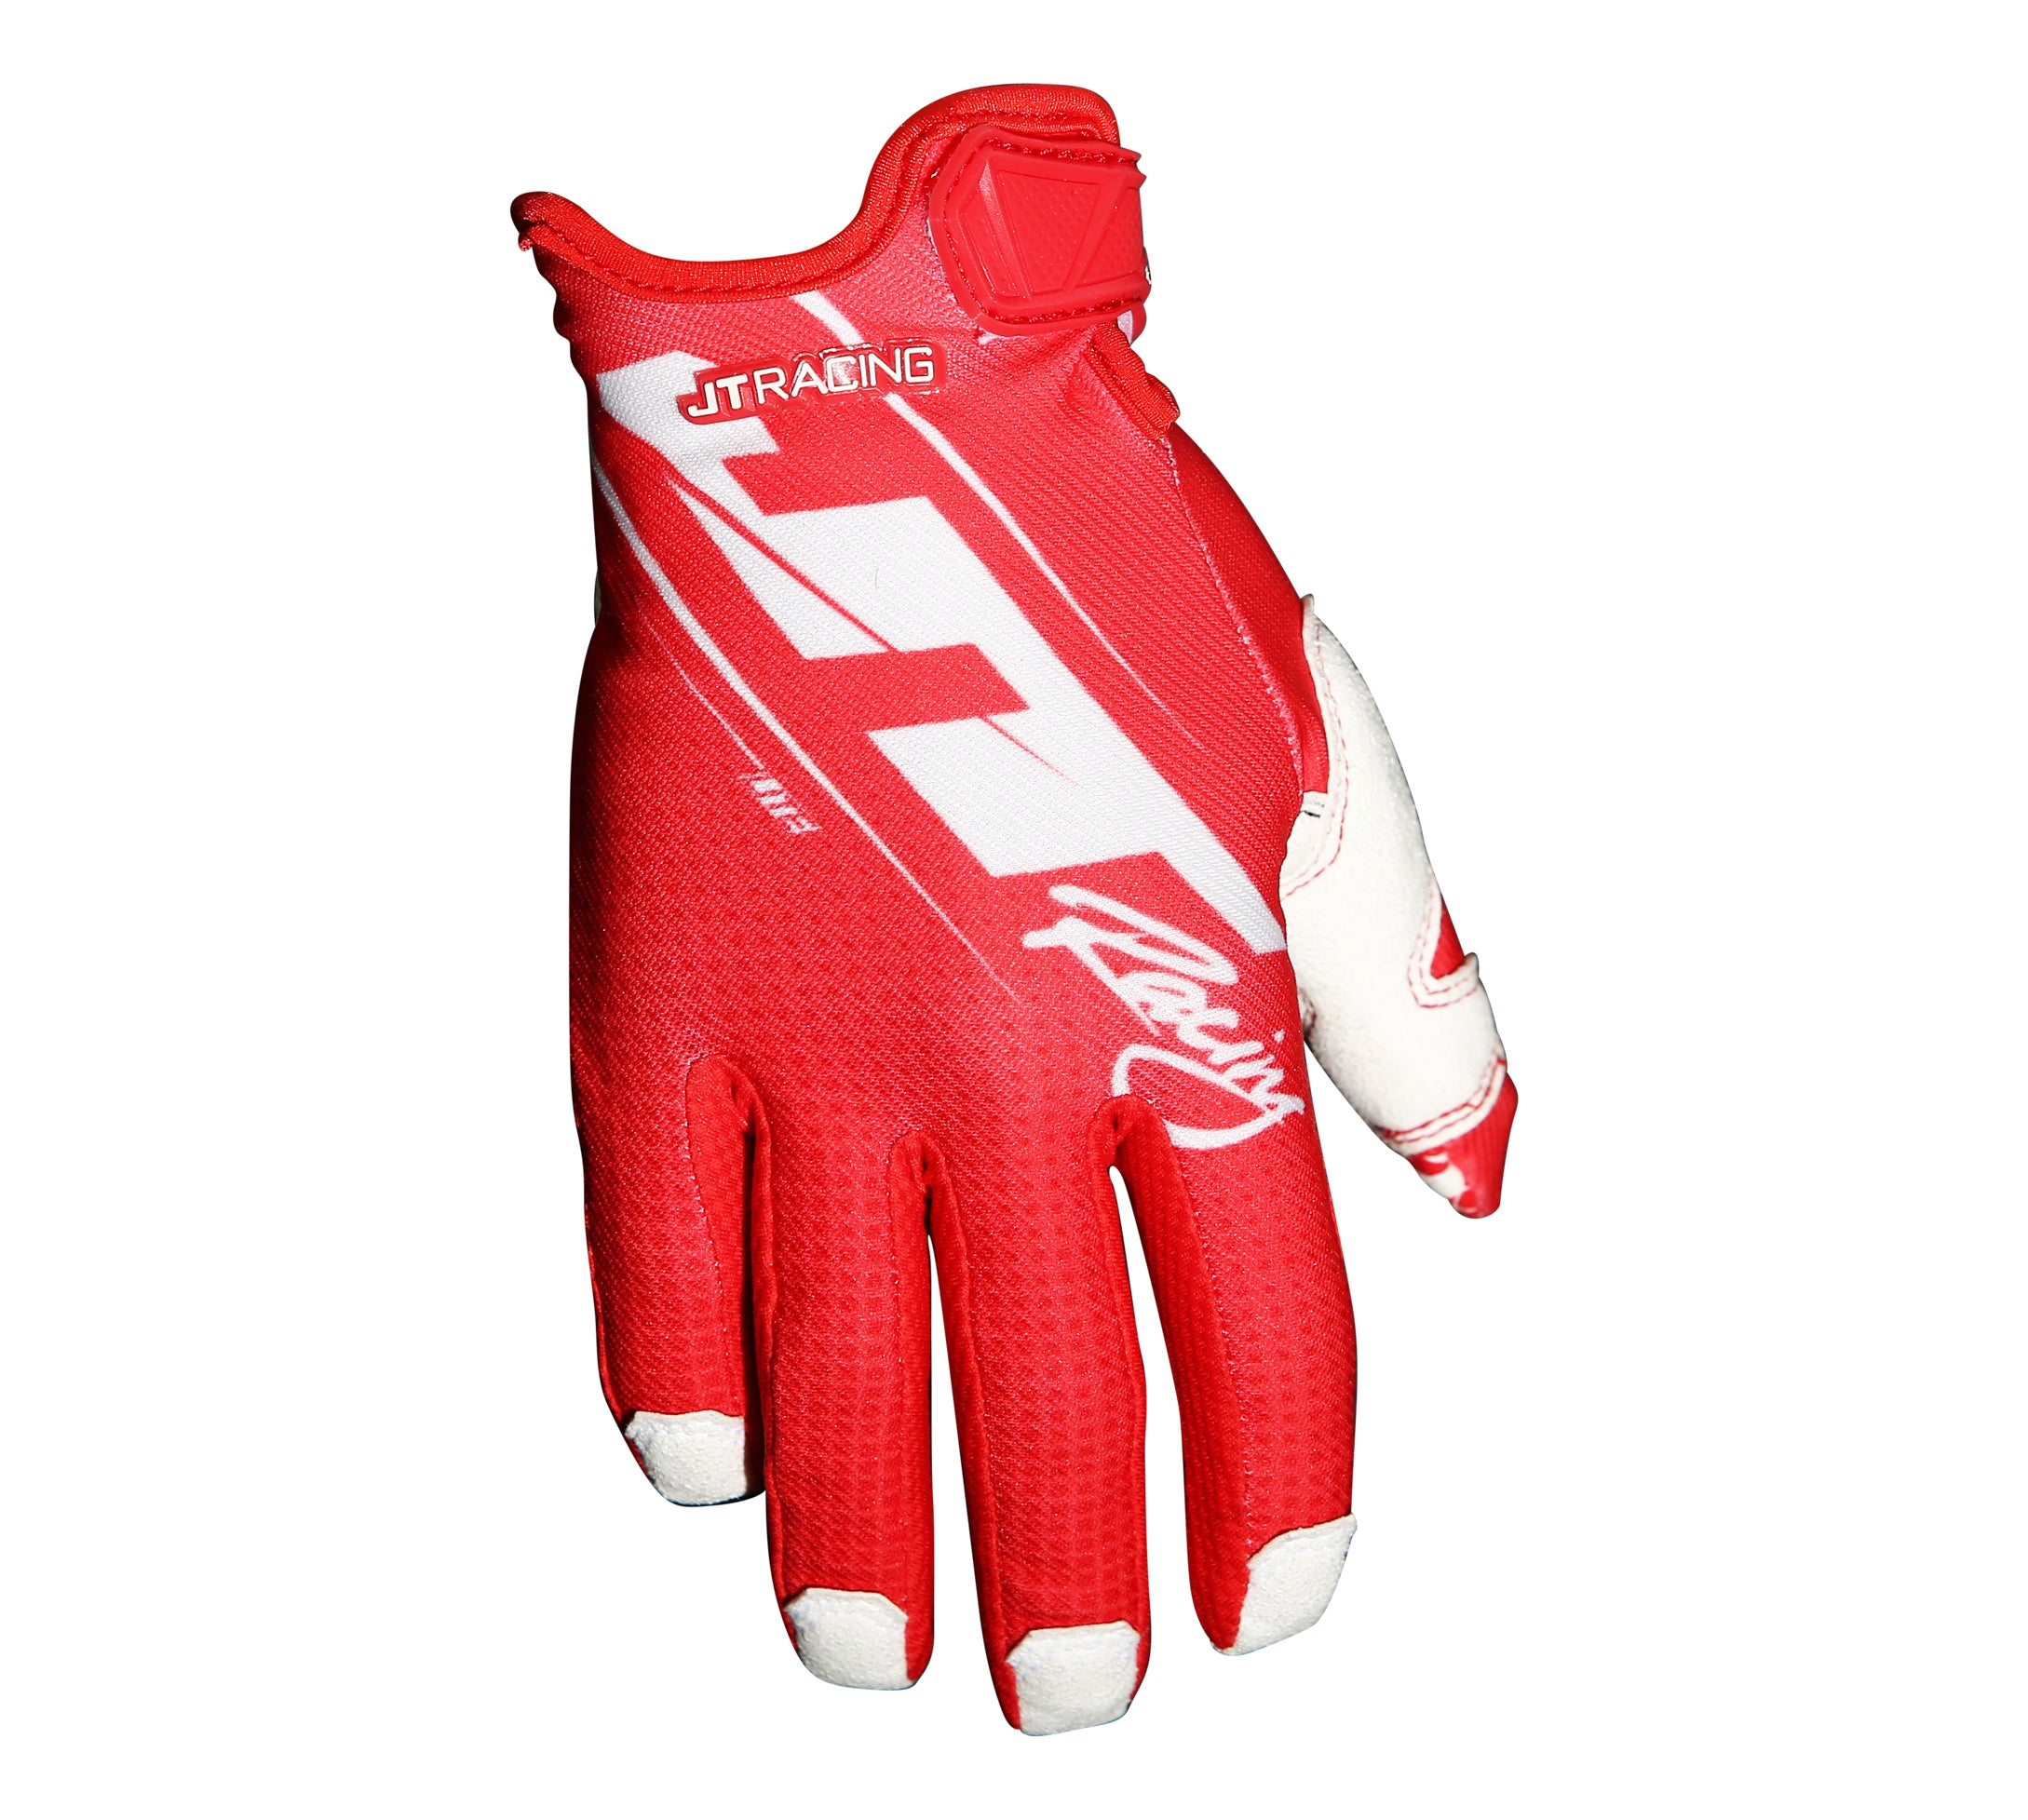 JT Racing Lite16- Slasher Glove, Red